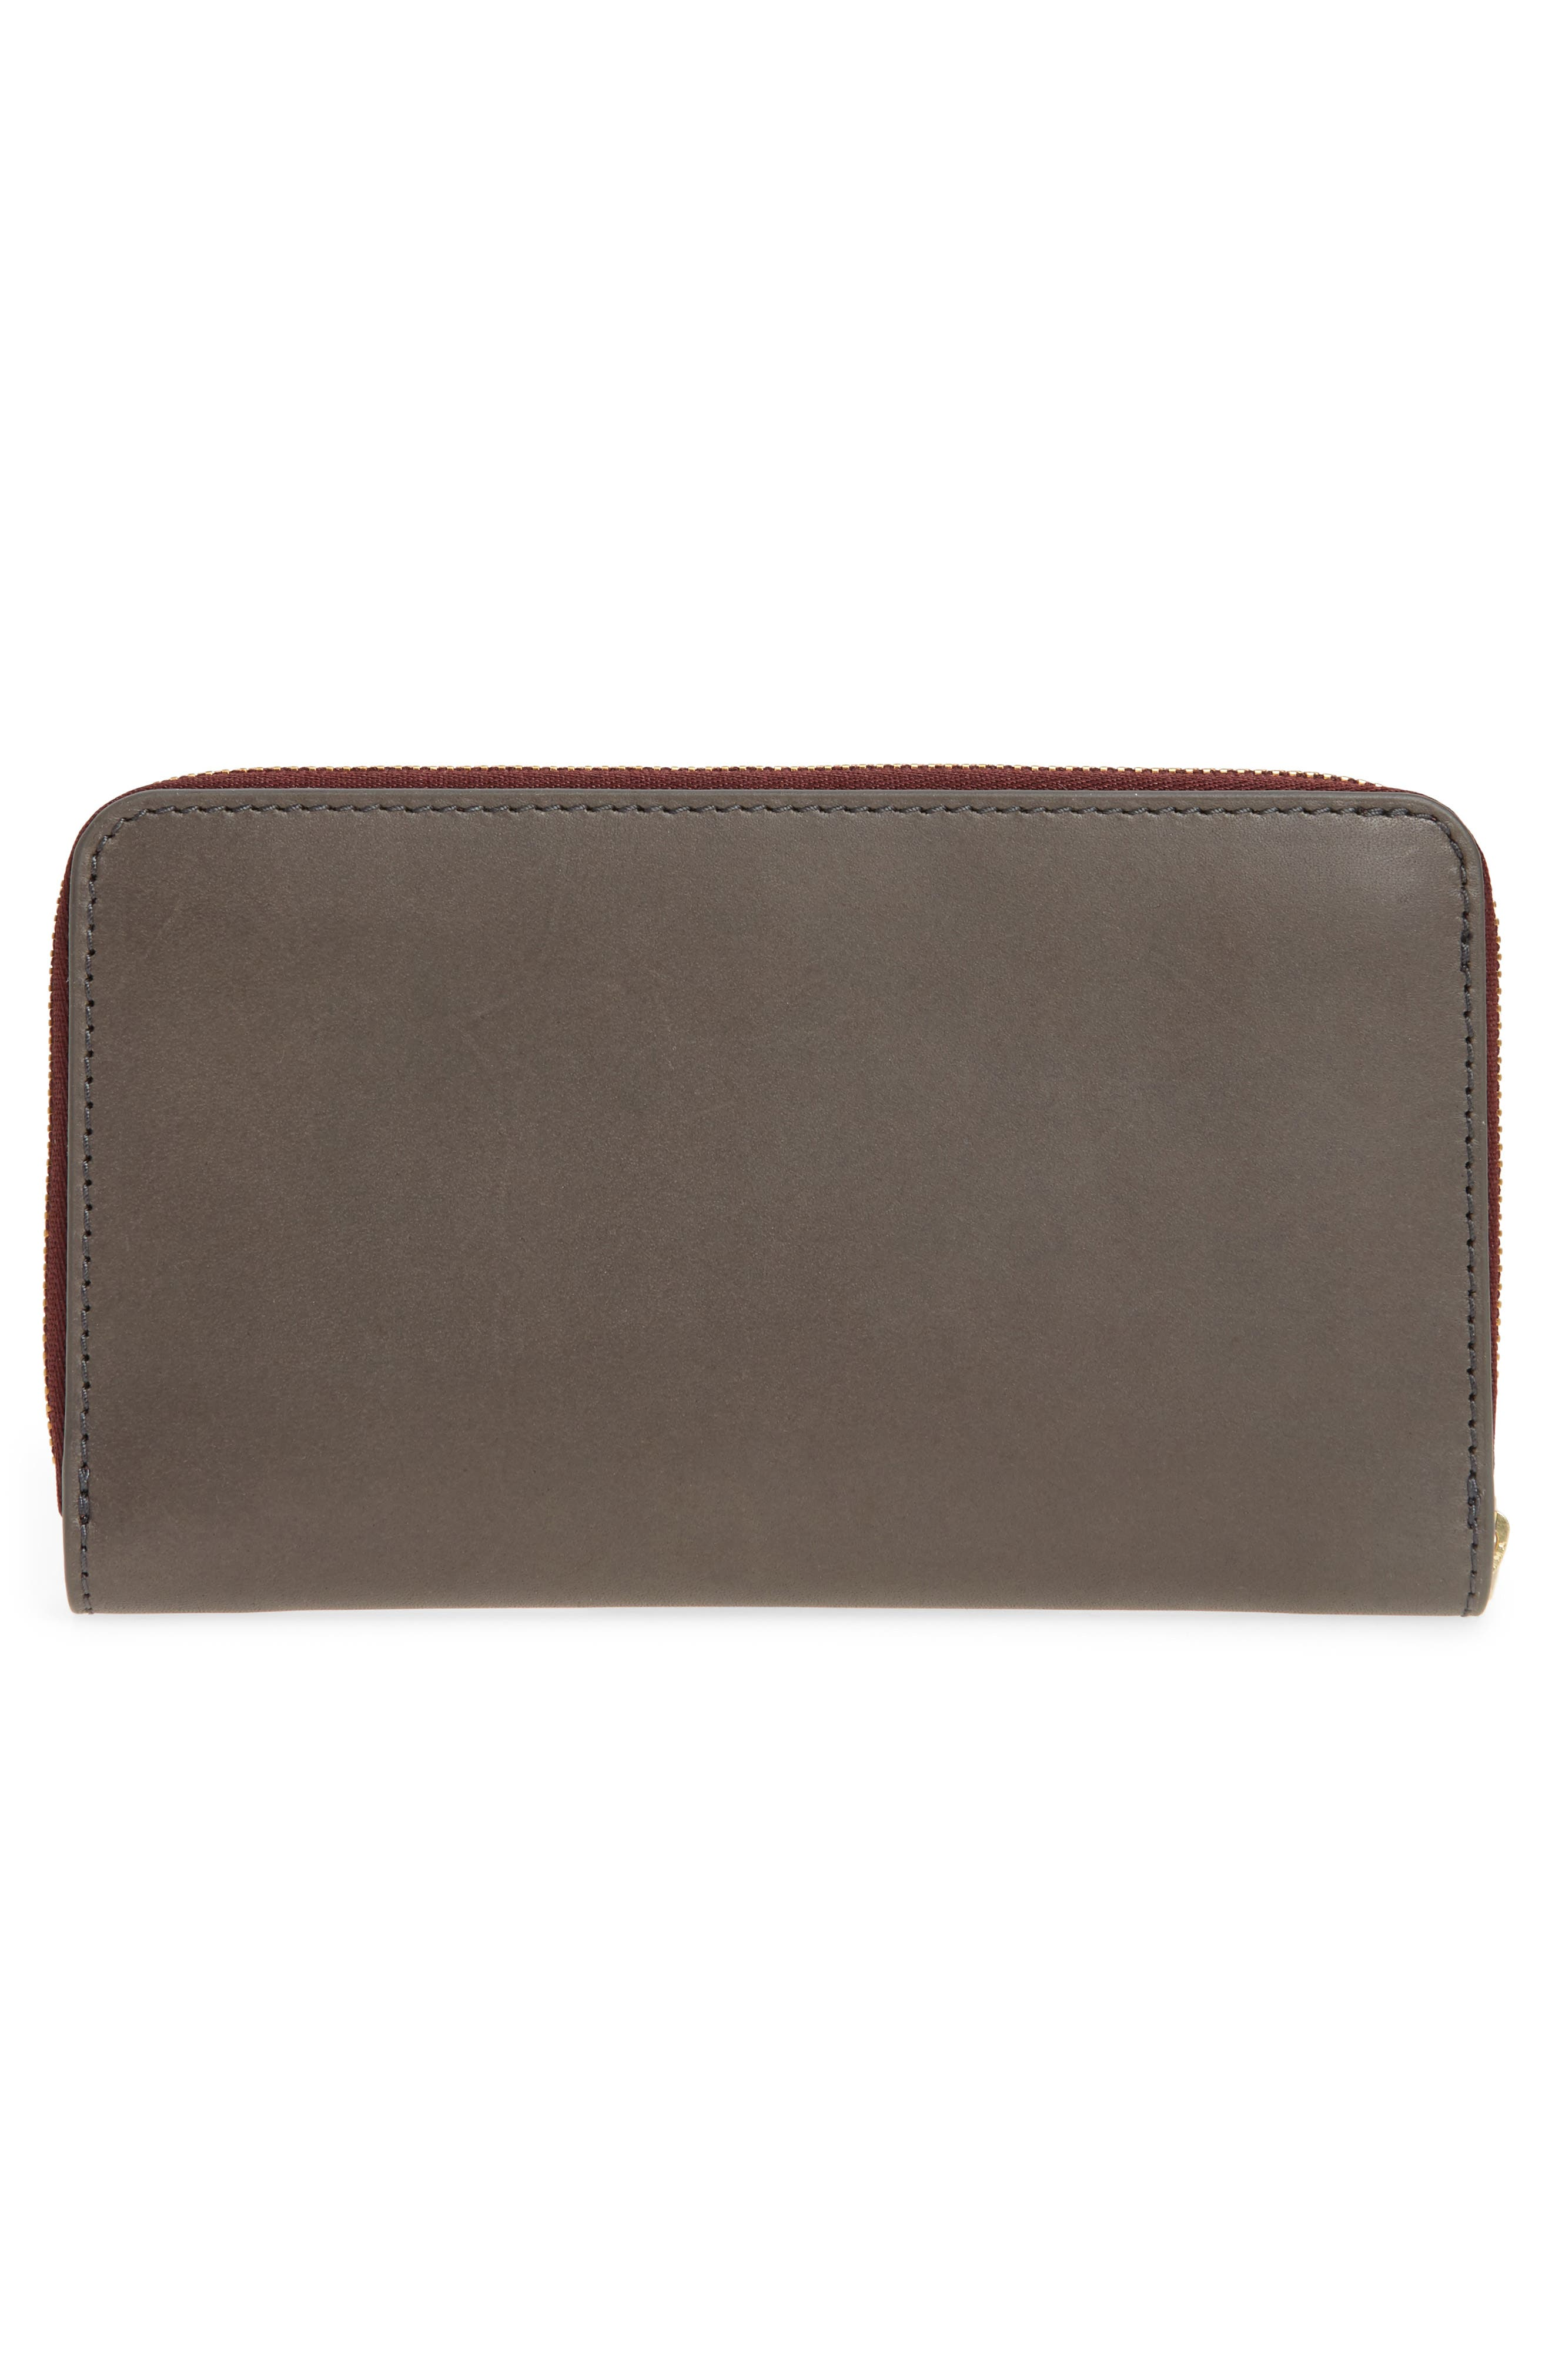 Alternate Image 3  - Skagen Compact Continental Wallet